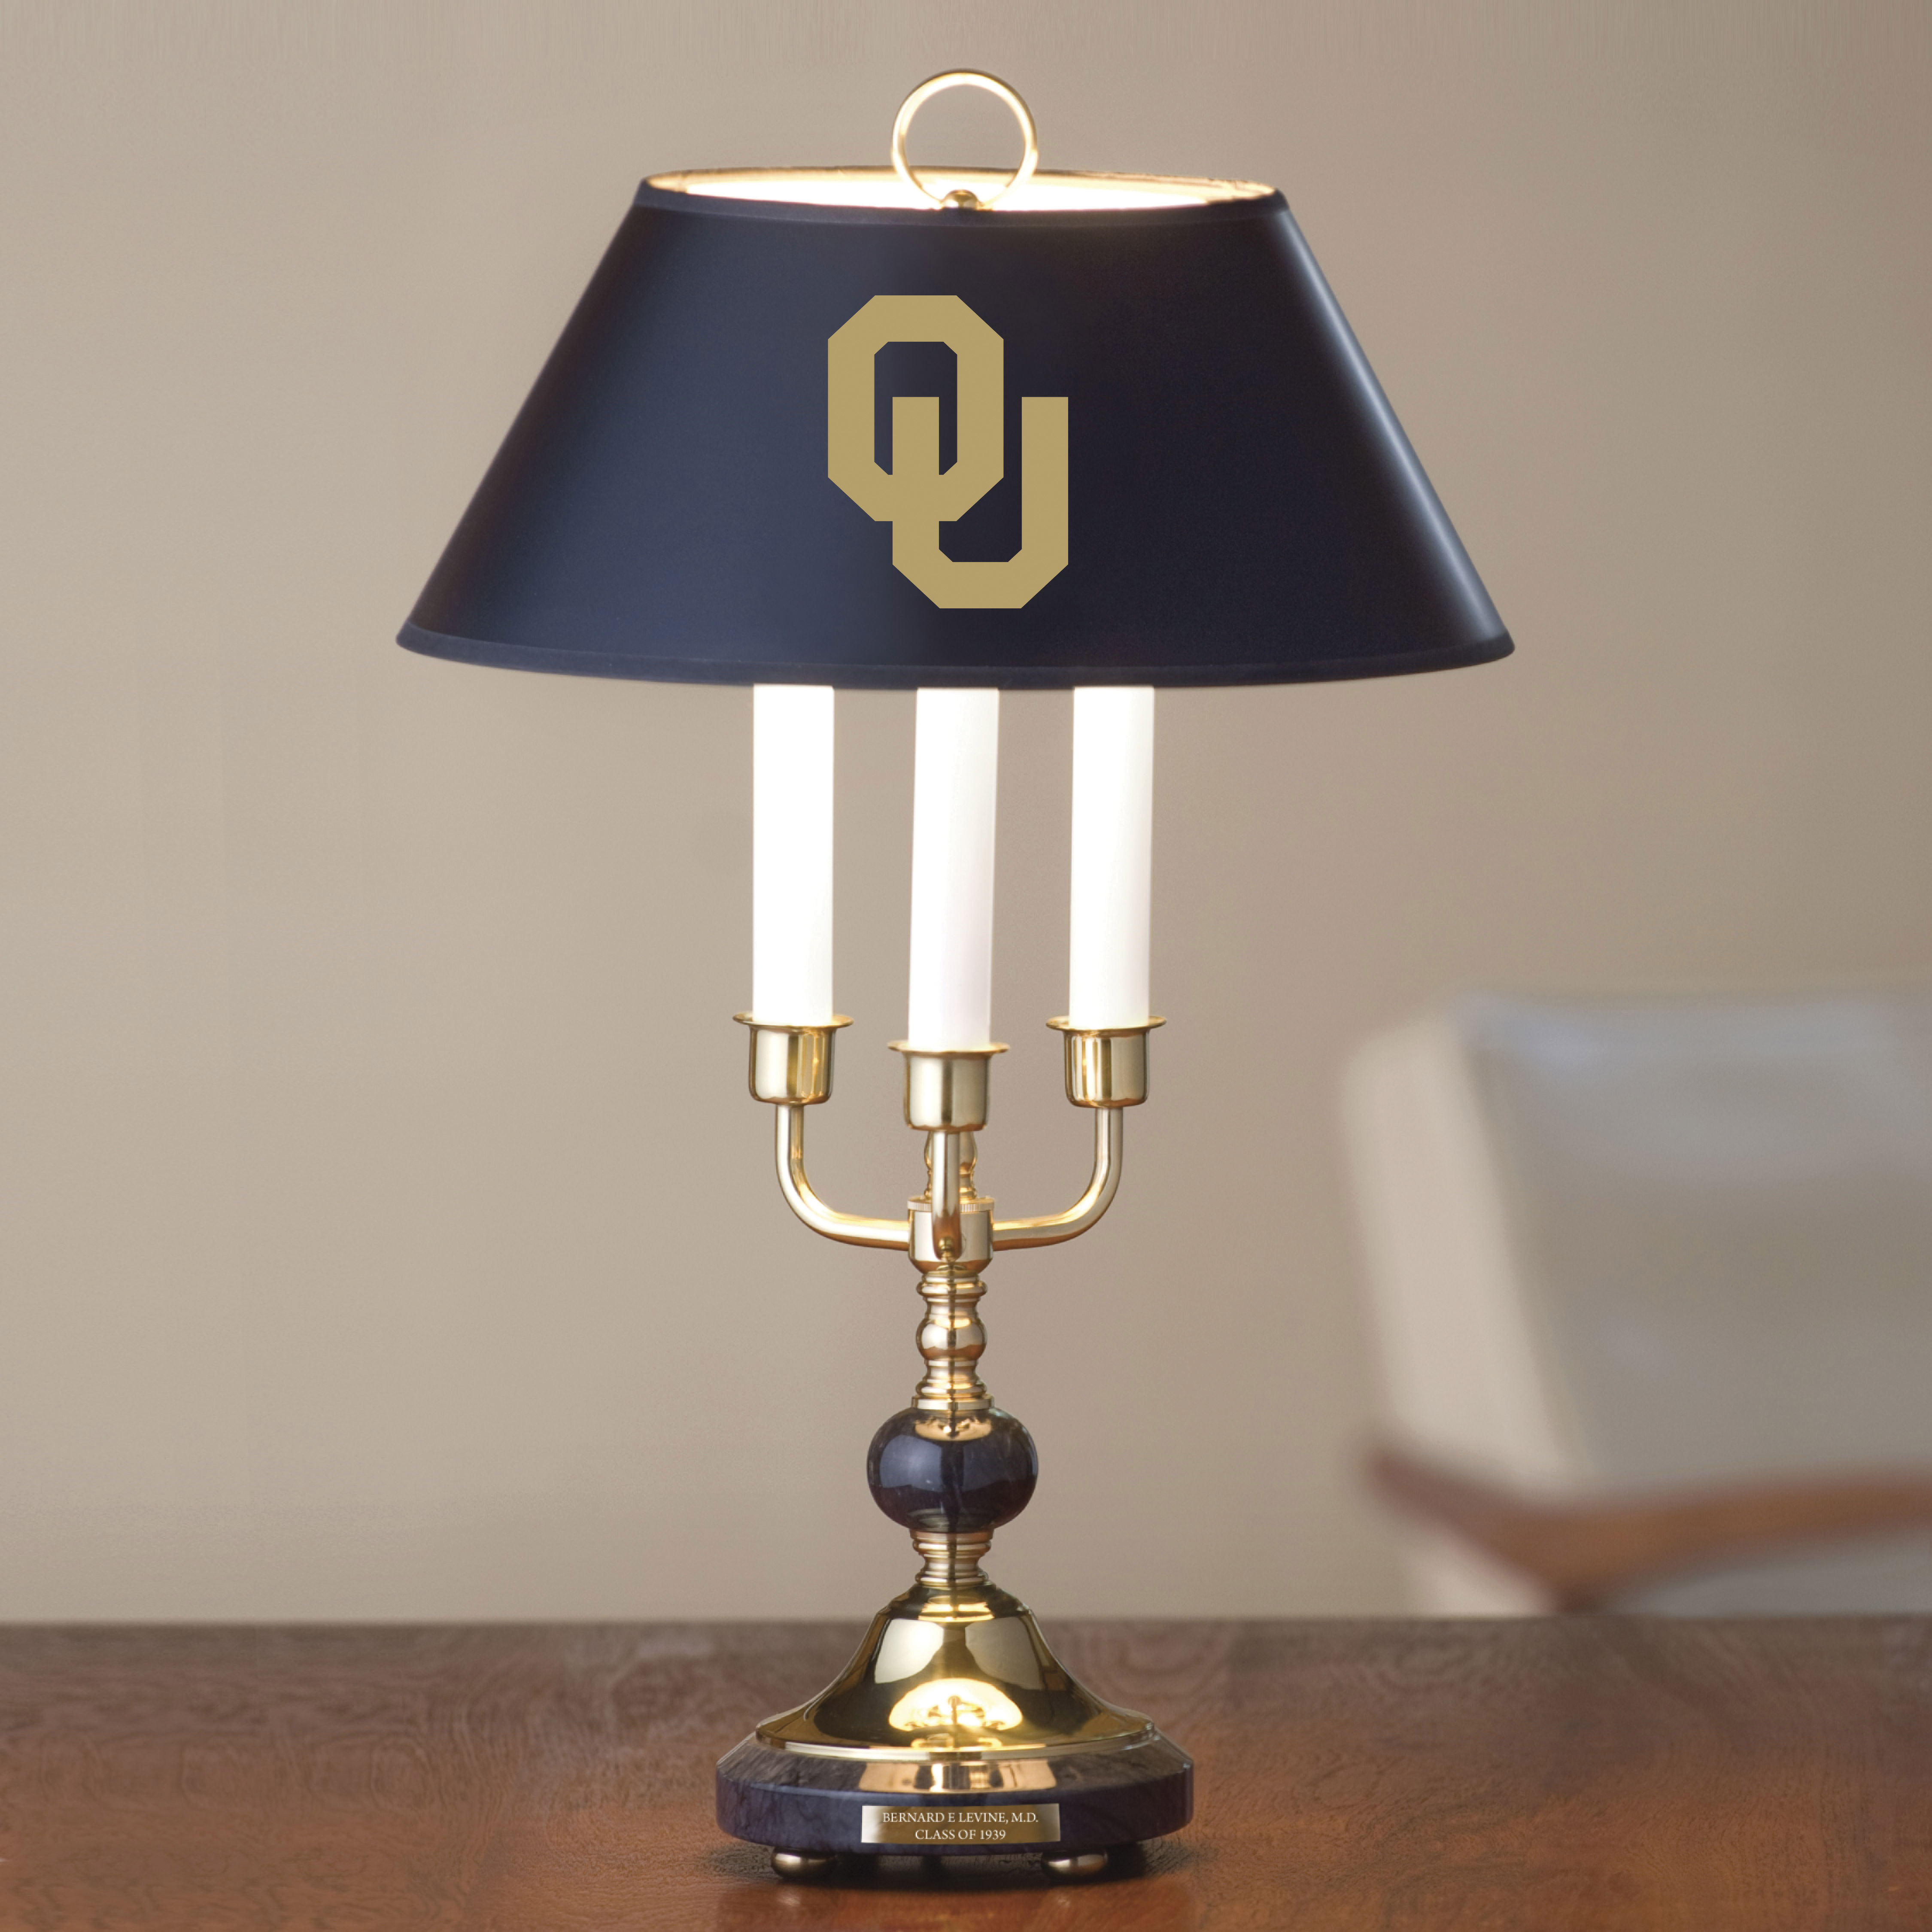 University of Oklahoma Lamp in Brass & Marble